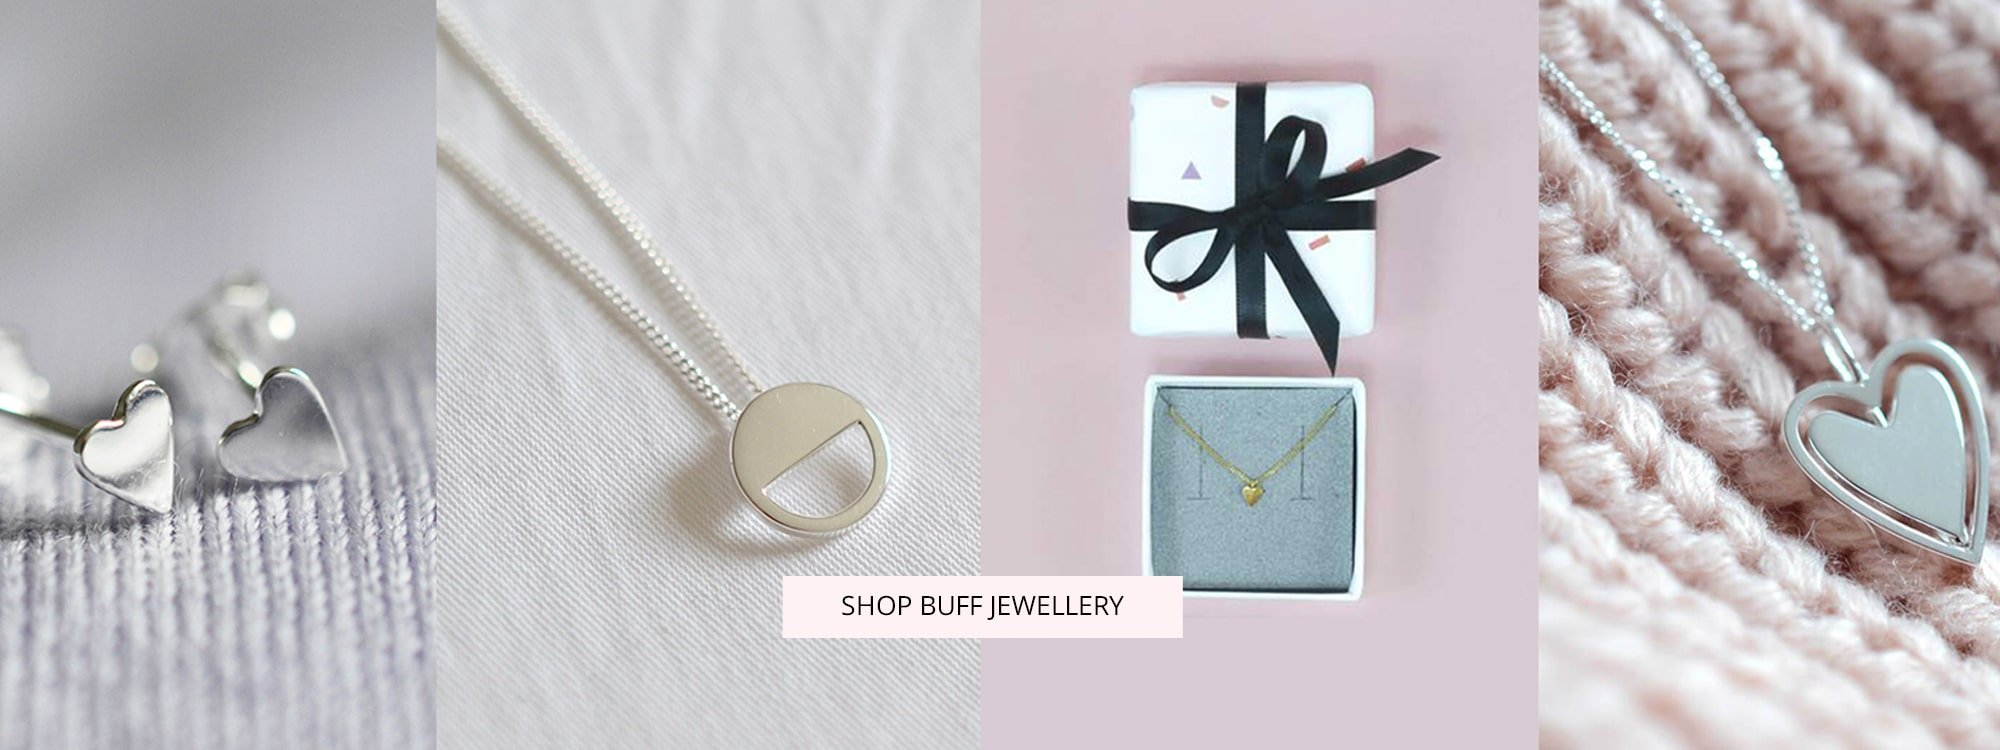 Shop BUFF Jewellery